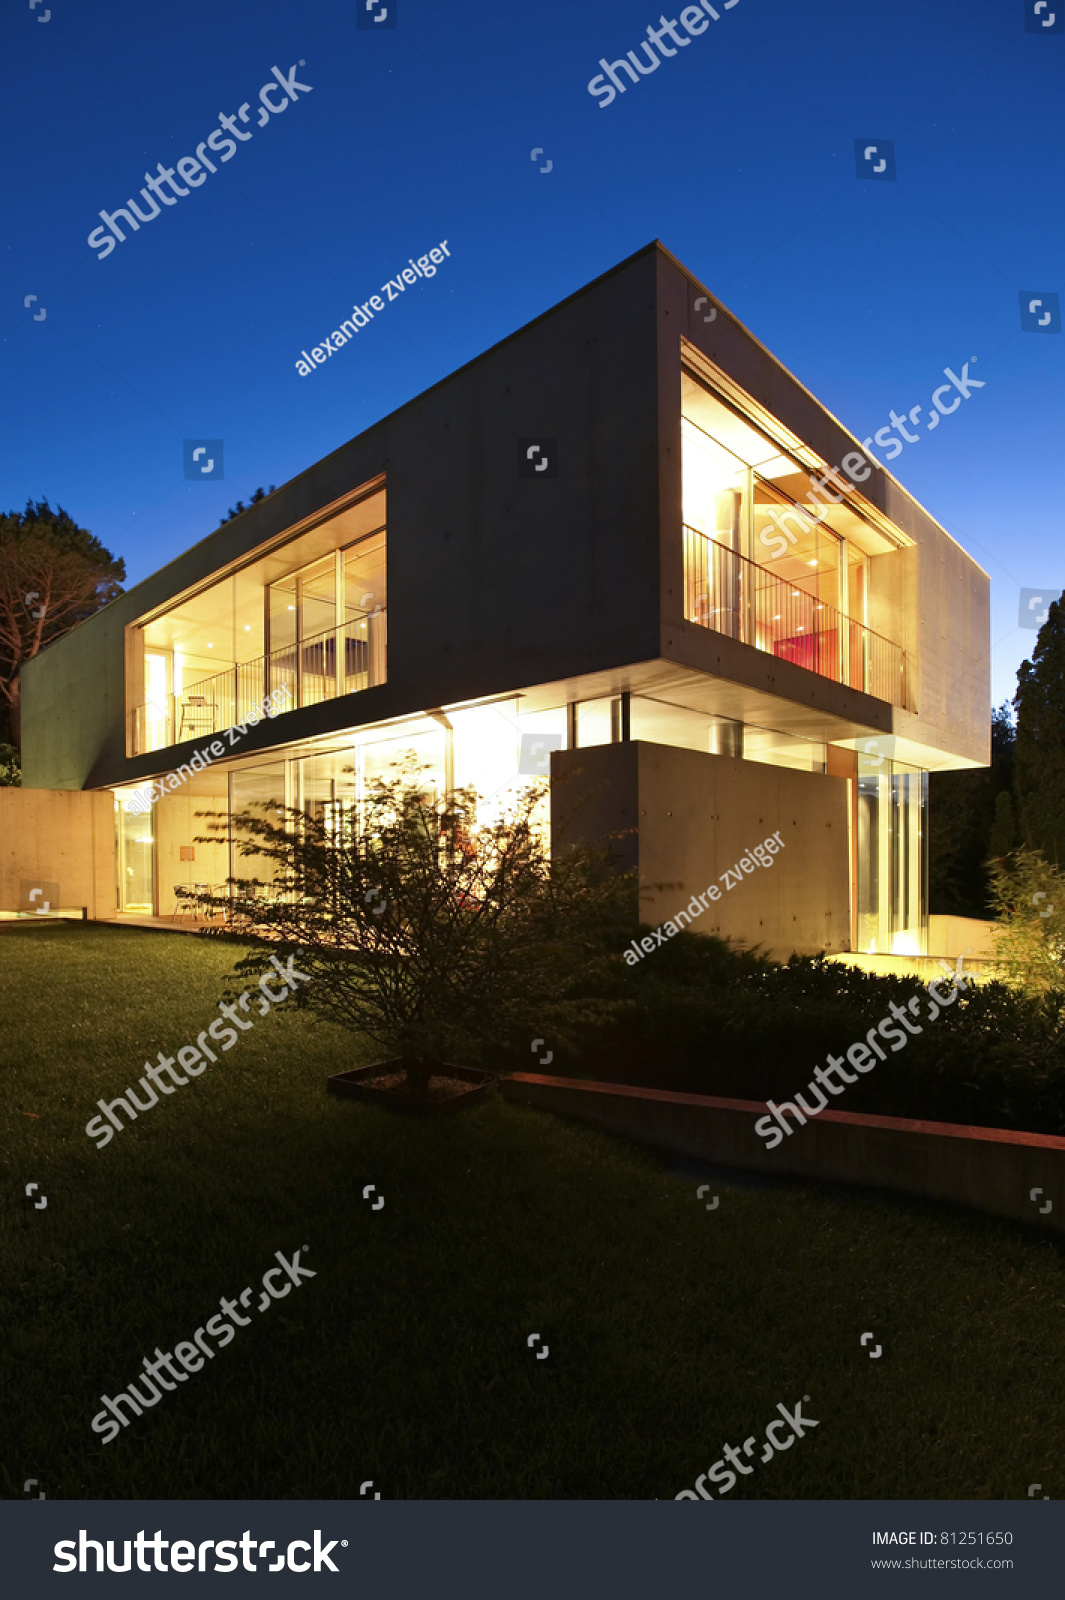 New architecture beautiful modern house outdoors at night for Modern house at night